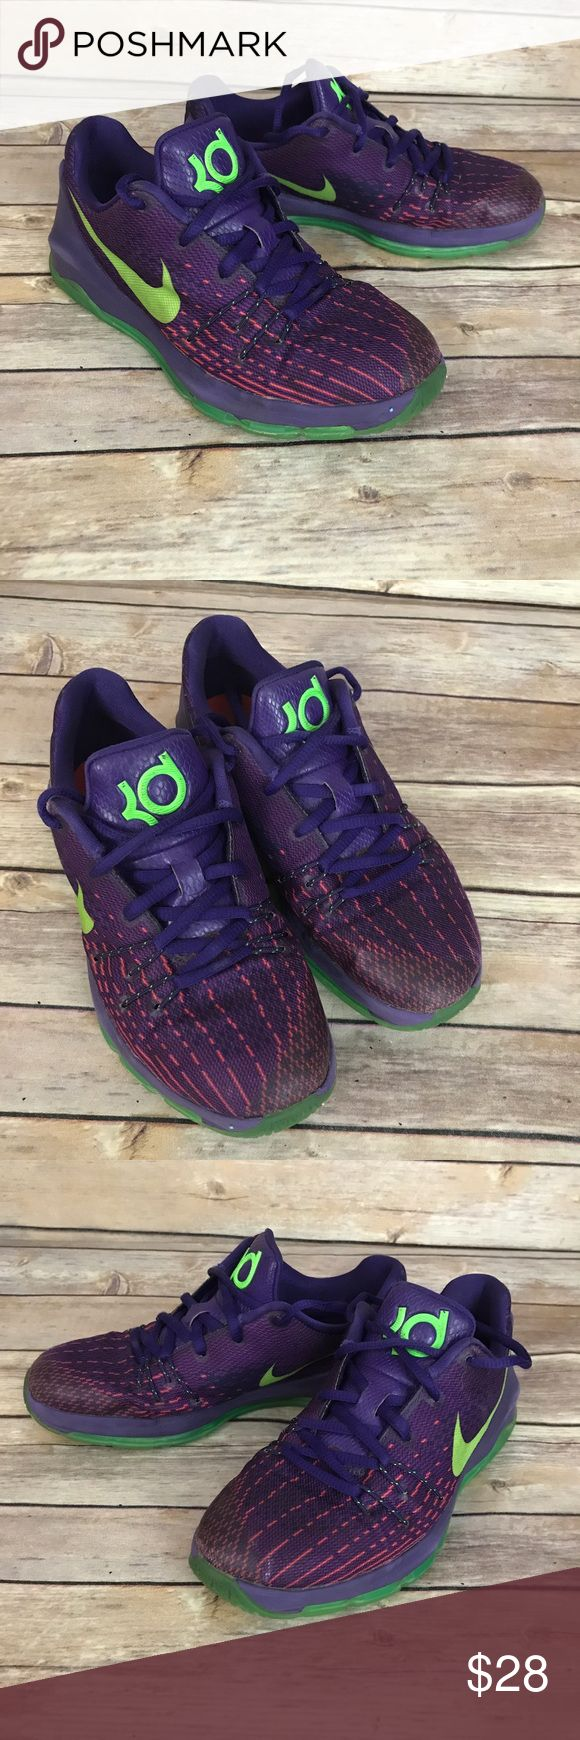 Nike Kd purple and green sneakers Girls 2Y Nike kd sneakers. Girls size 2Y. Purple and Green. Very good condition! Nike Shoes Sneakers